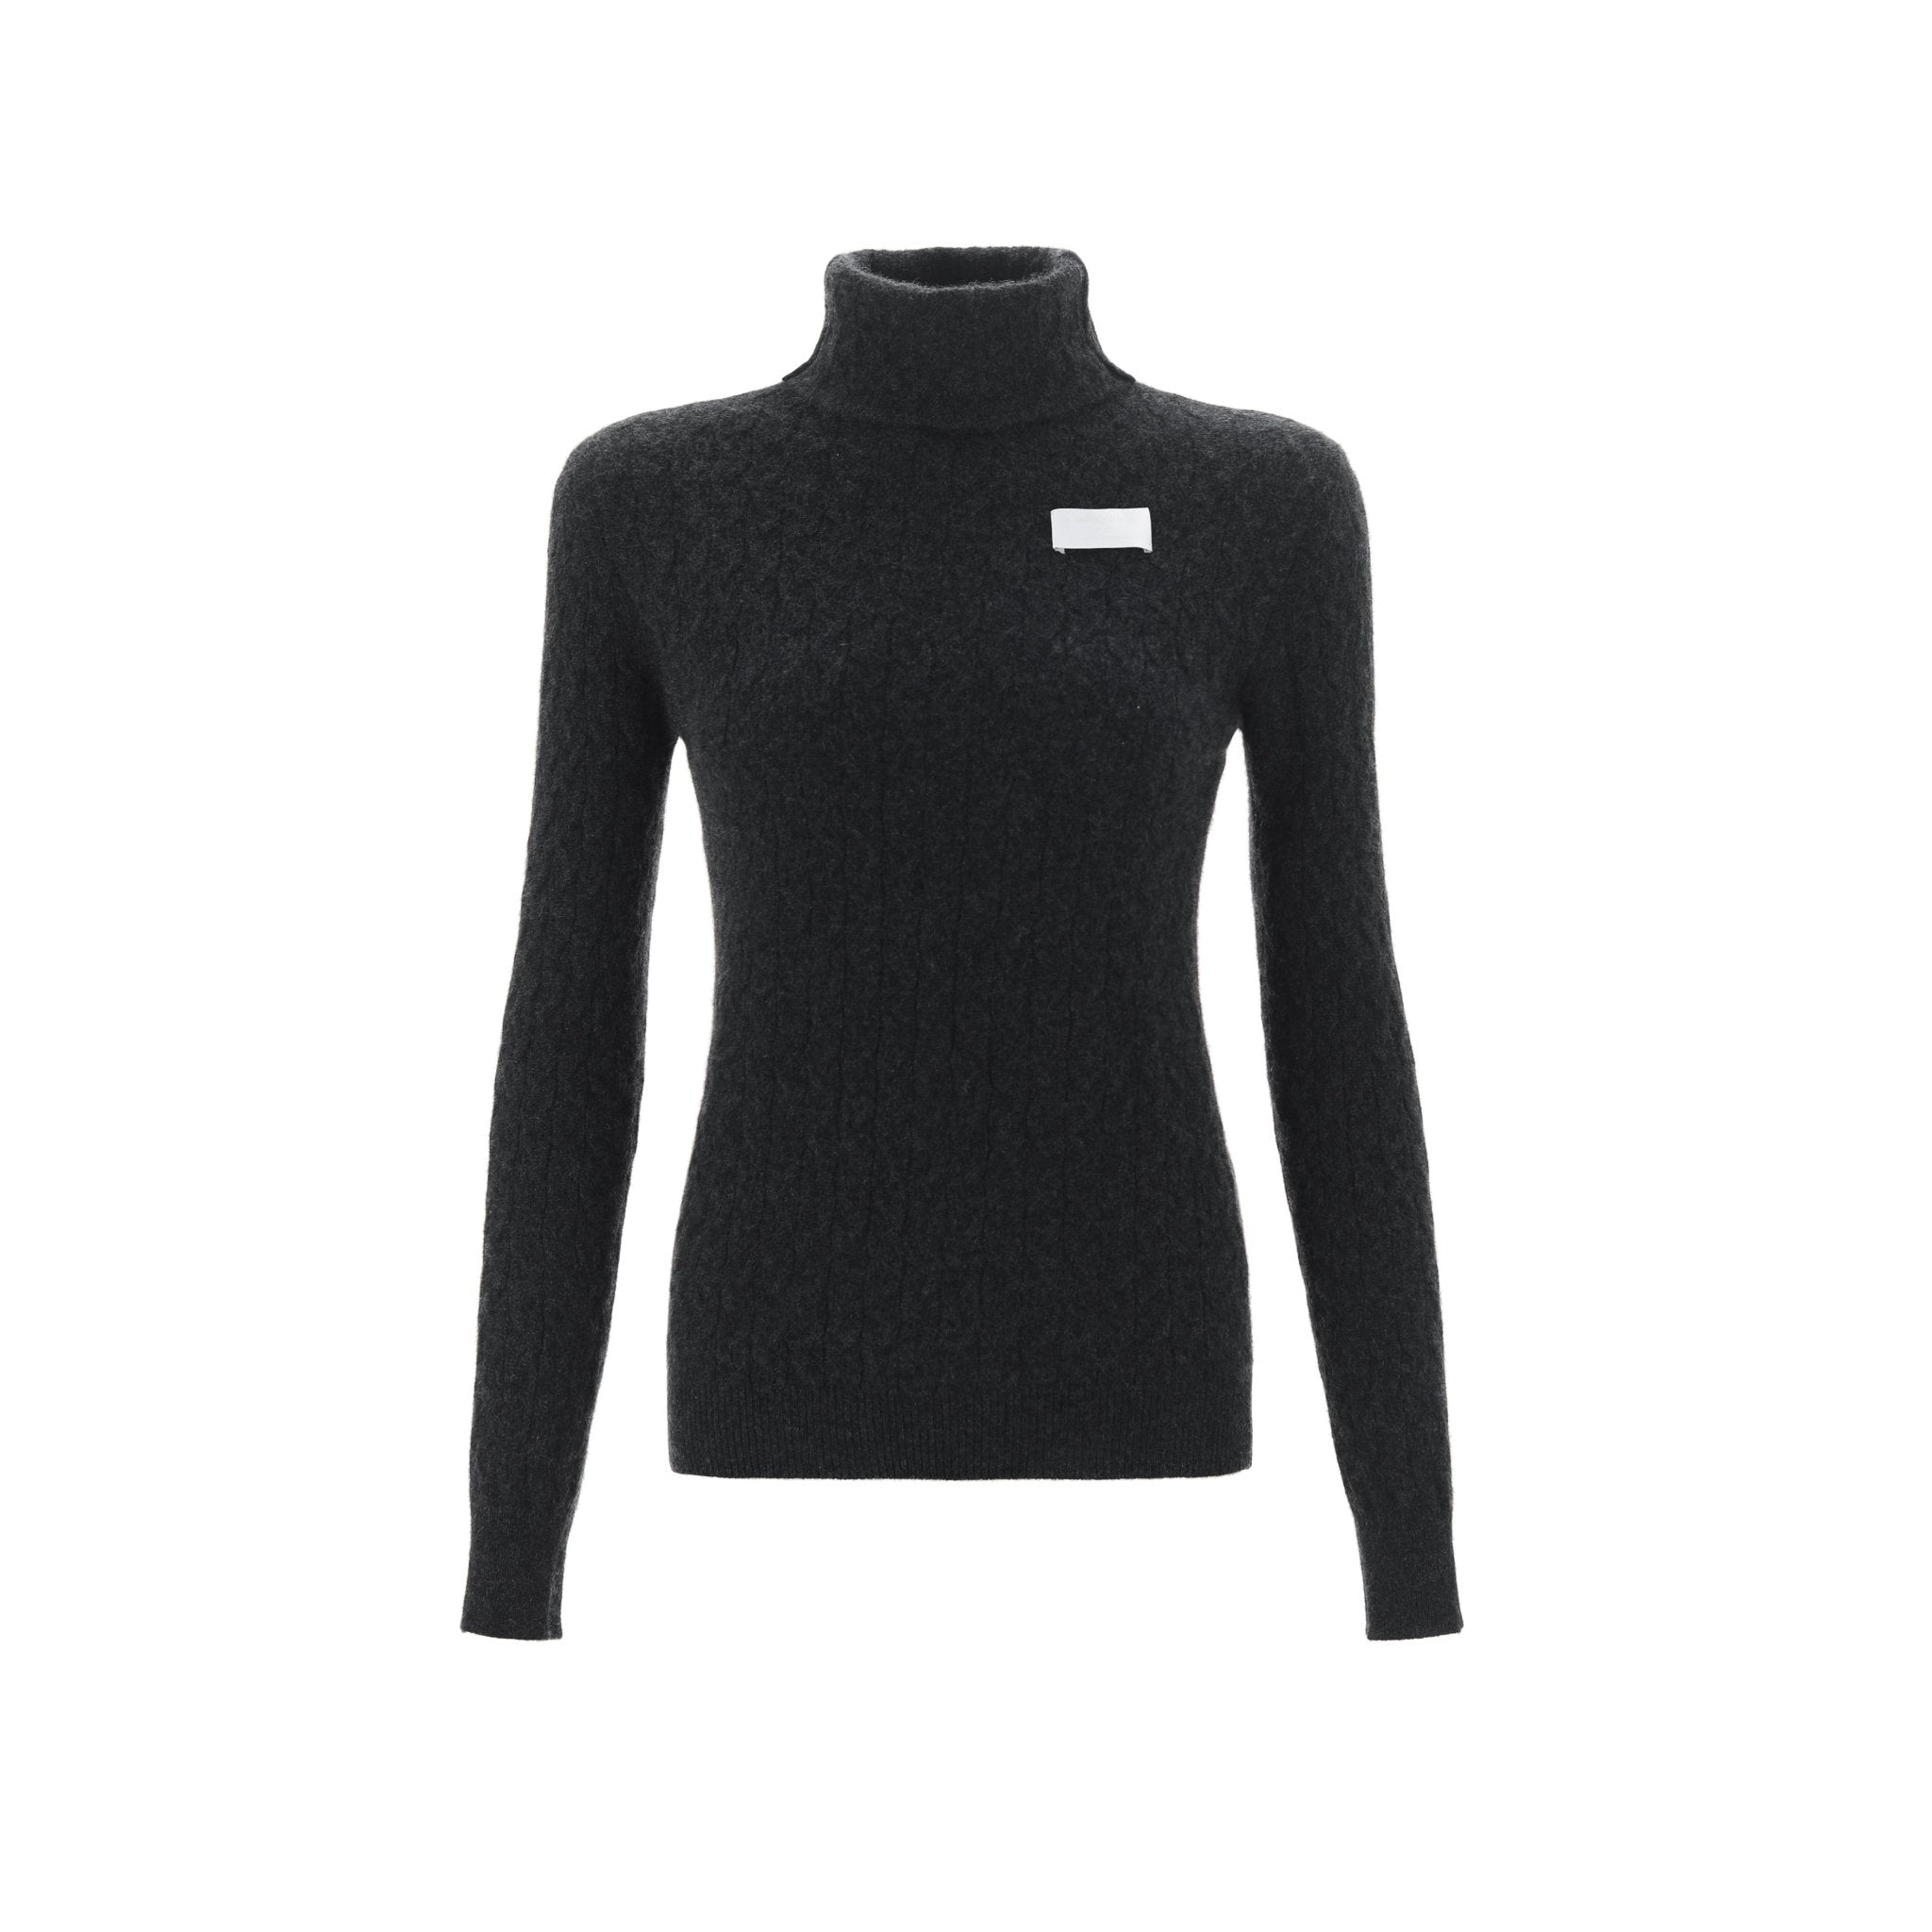 WARM AID Black Cashmere Turtleneck Sweater | MADA IN CHINA